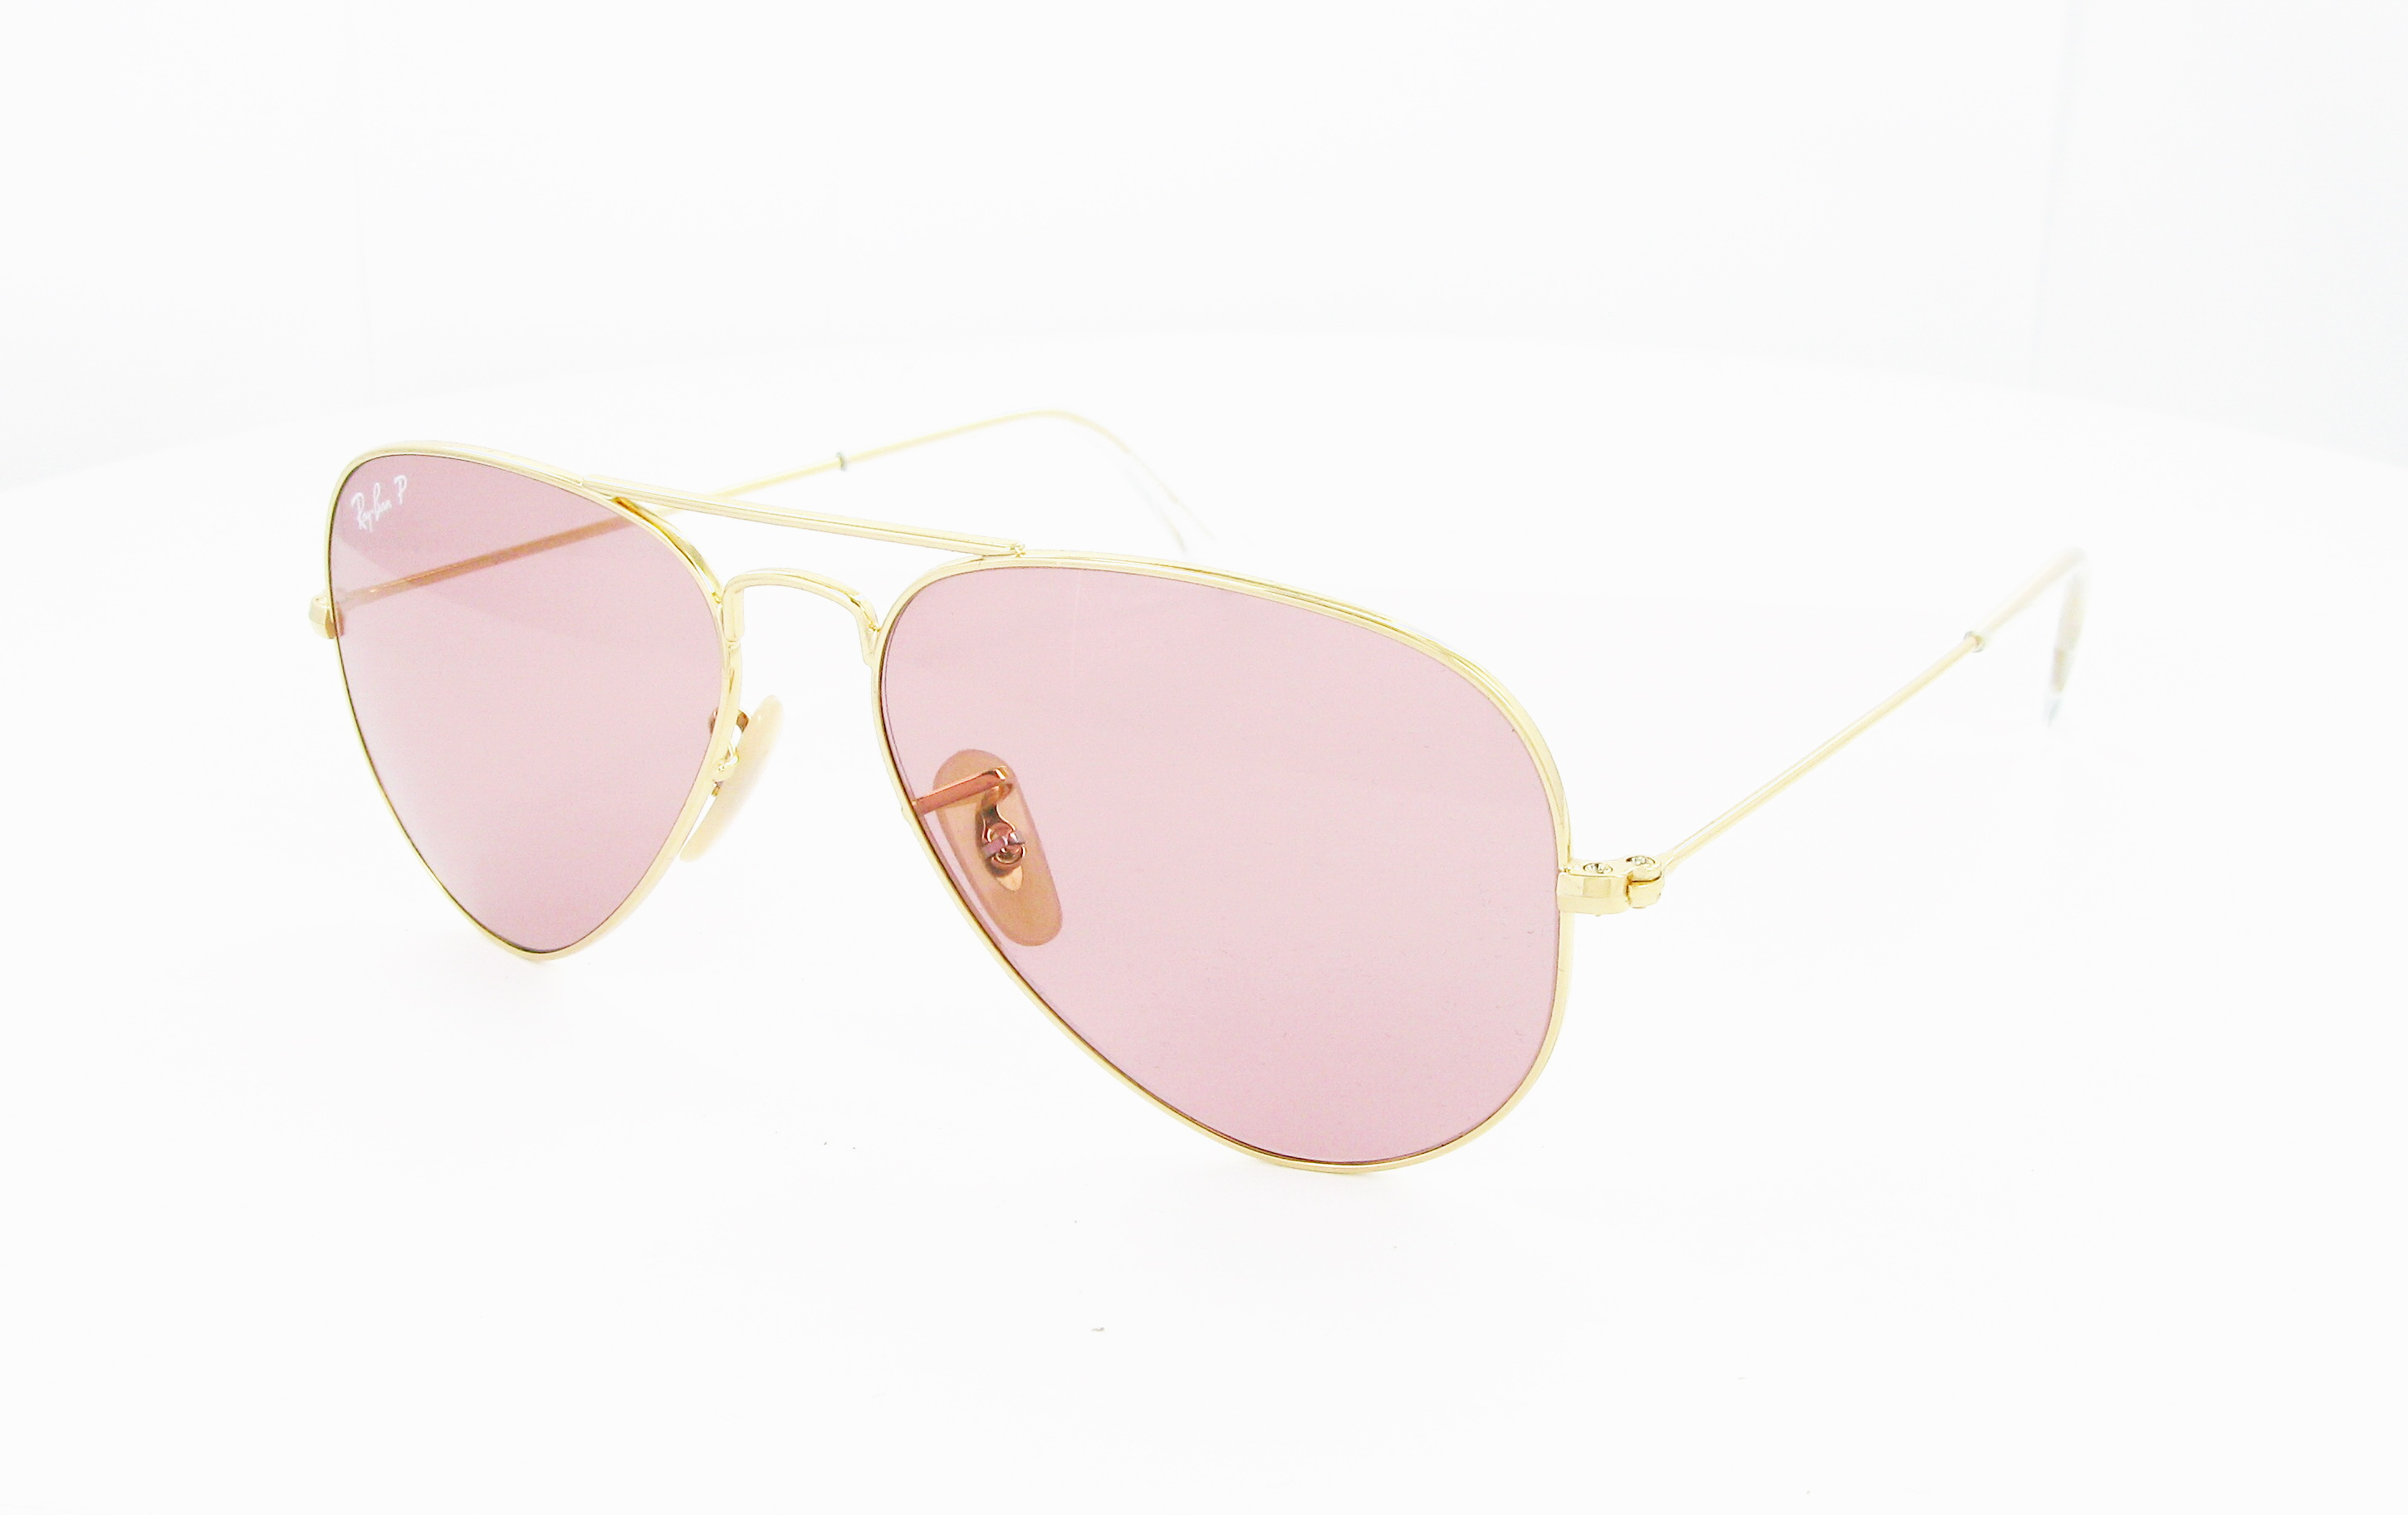 Ray Ban Aviator Femme Optical Center « Heritage Malta 65dba1511c6c